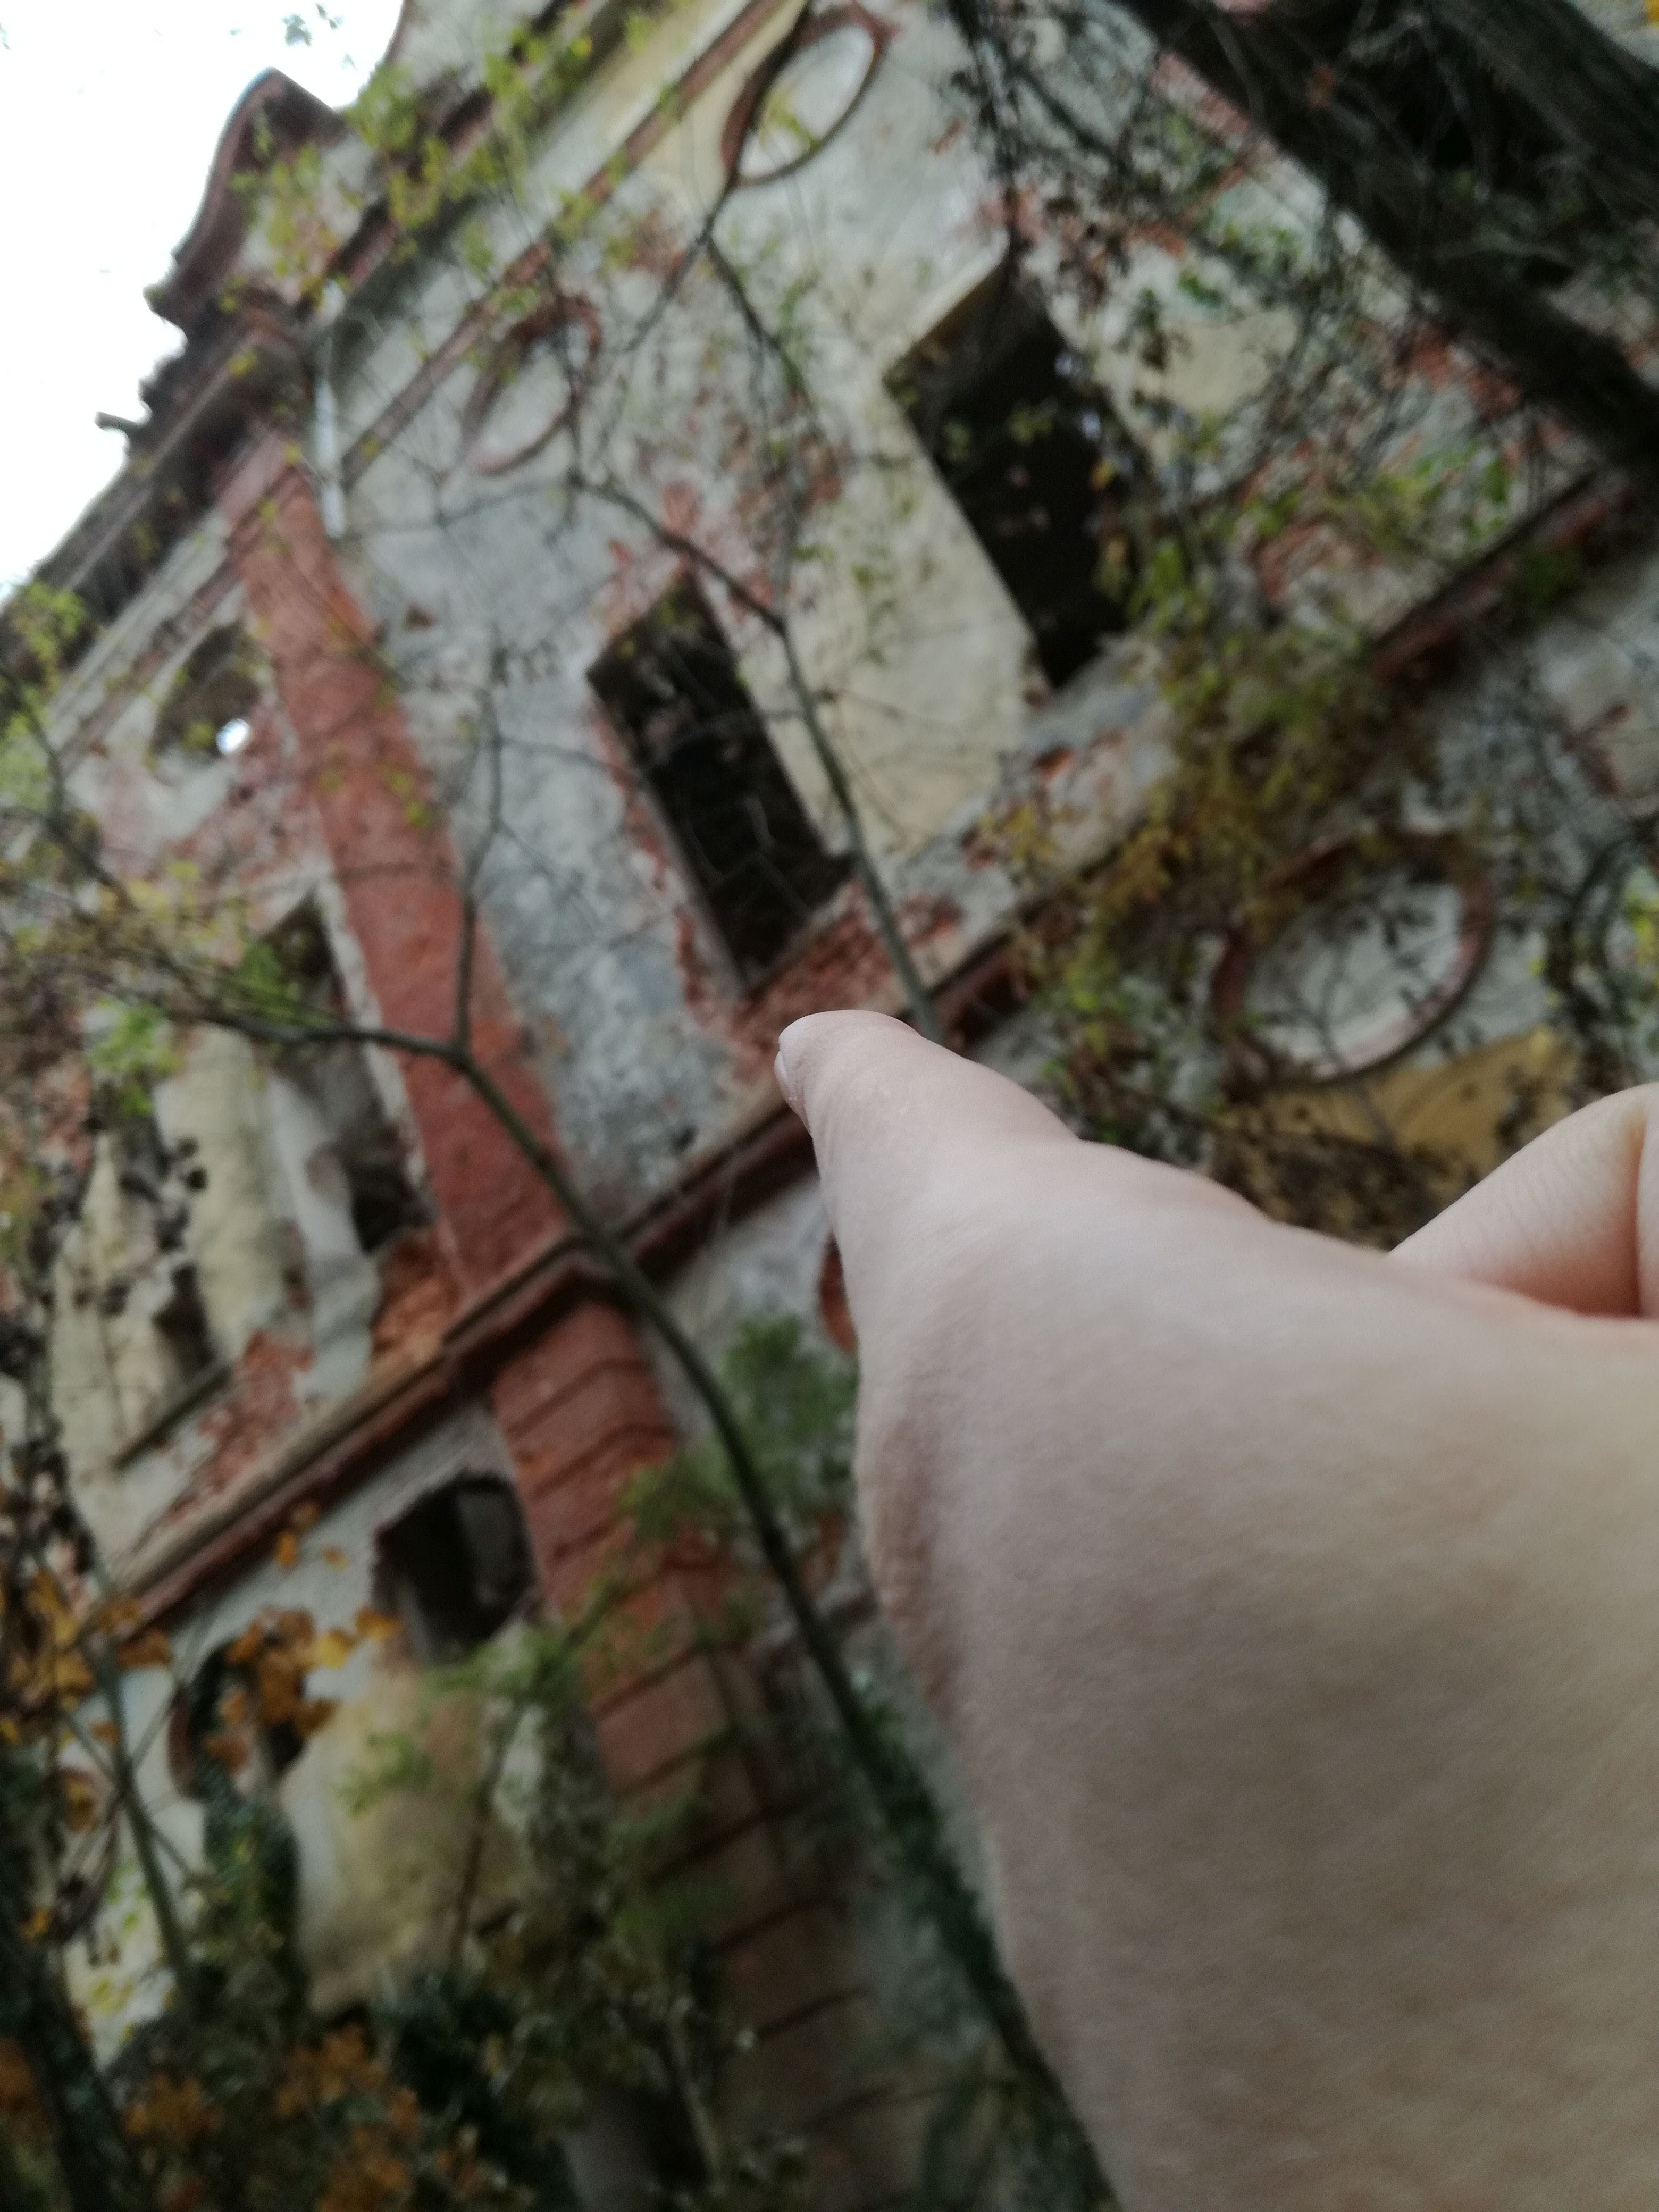 Free stock photo of abandoned, abandoned building, finger, hand